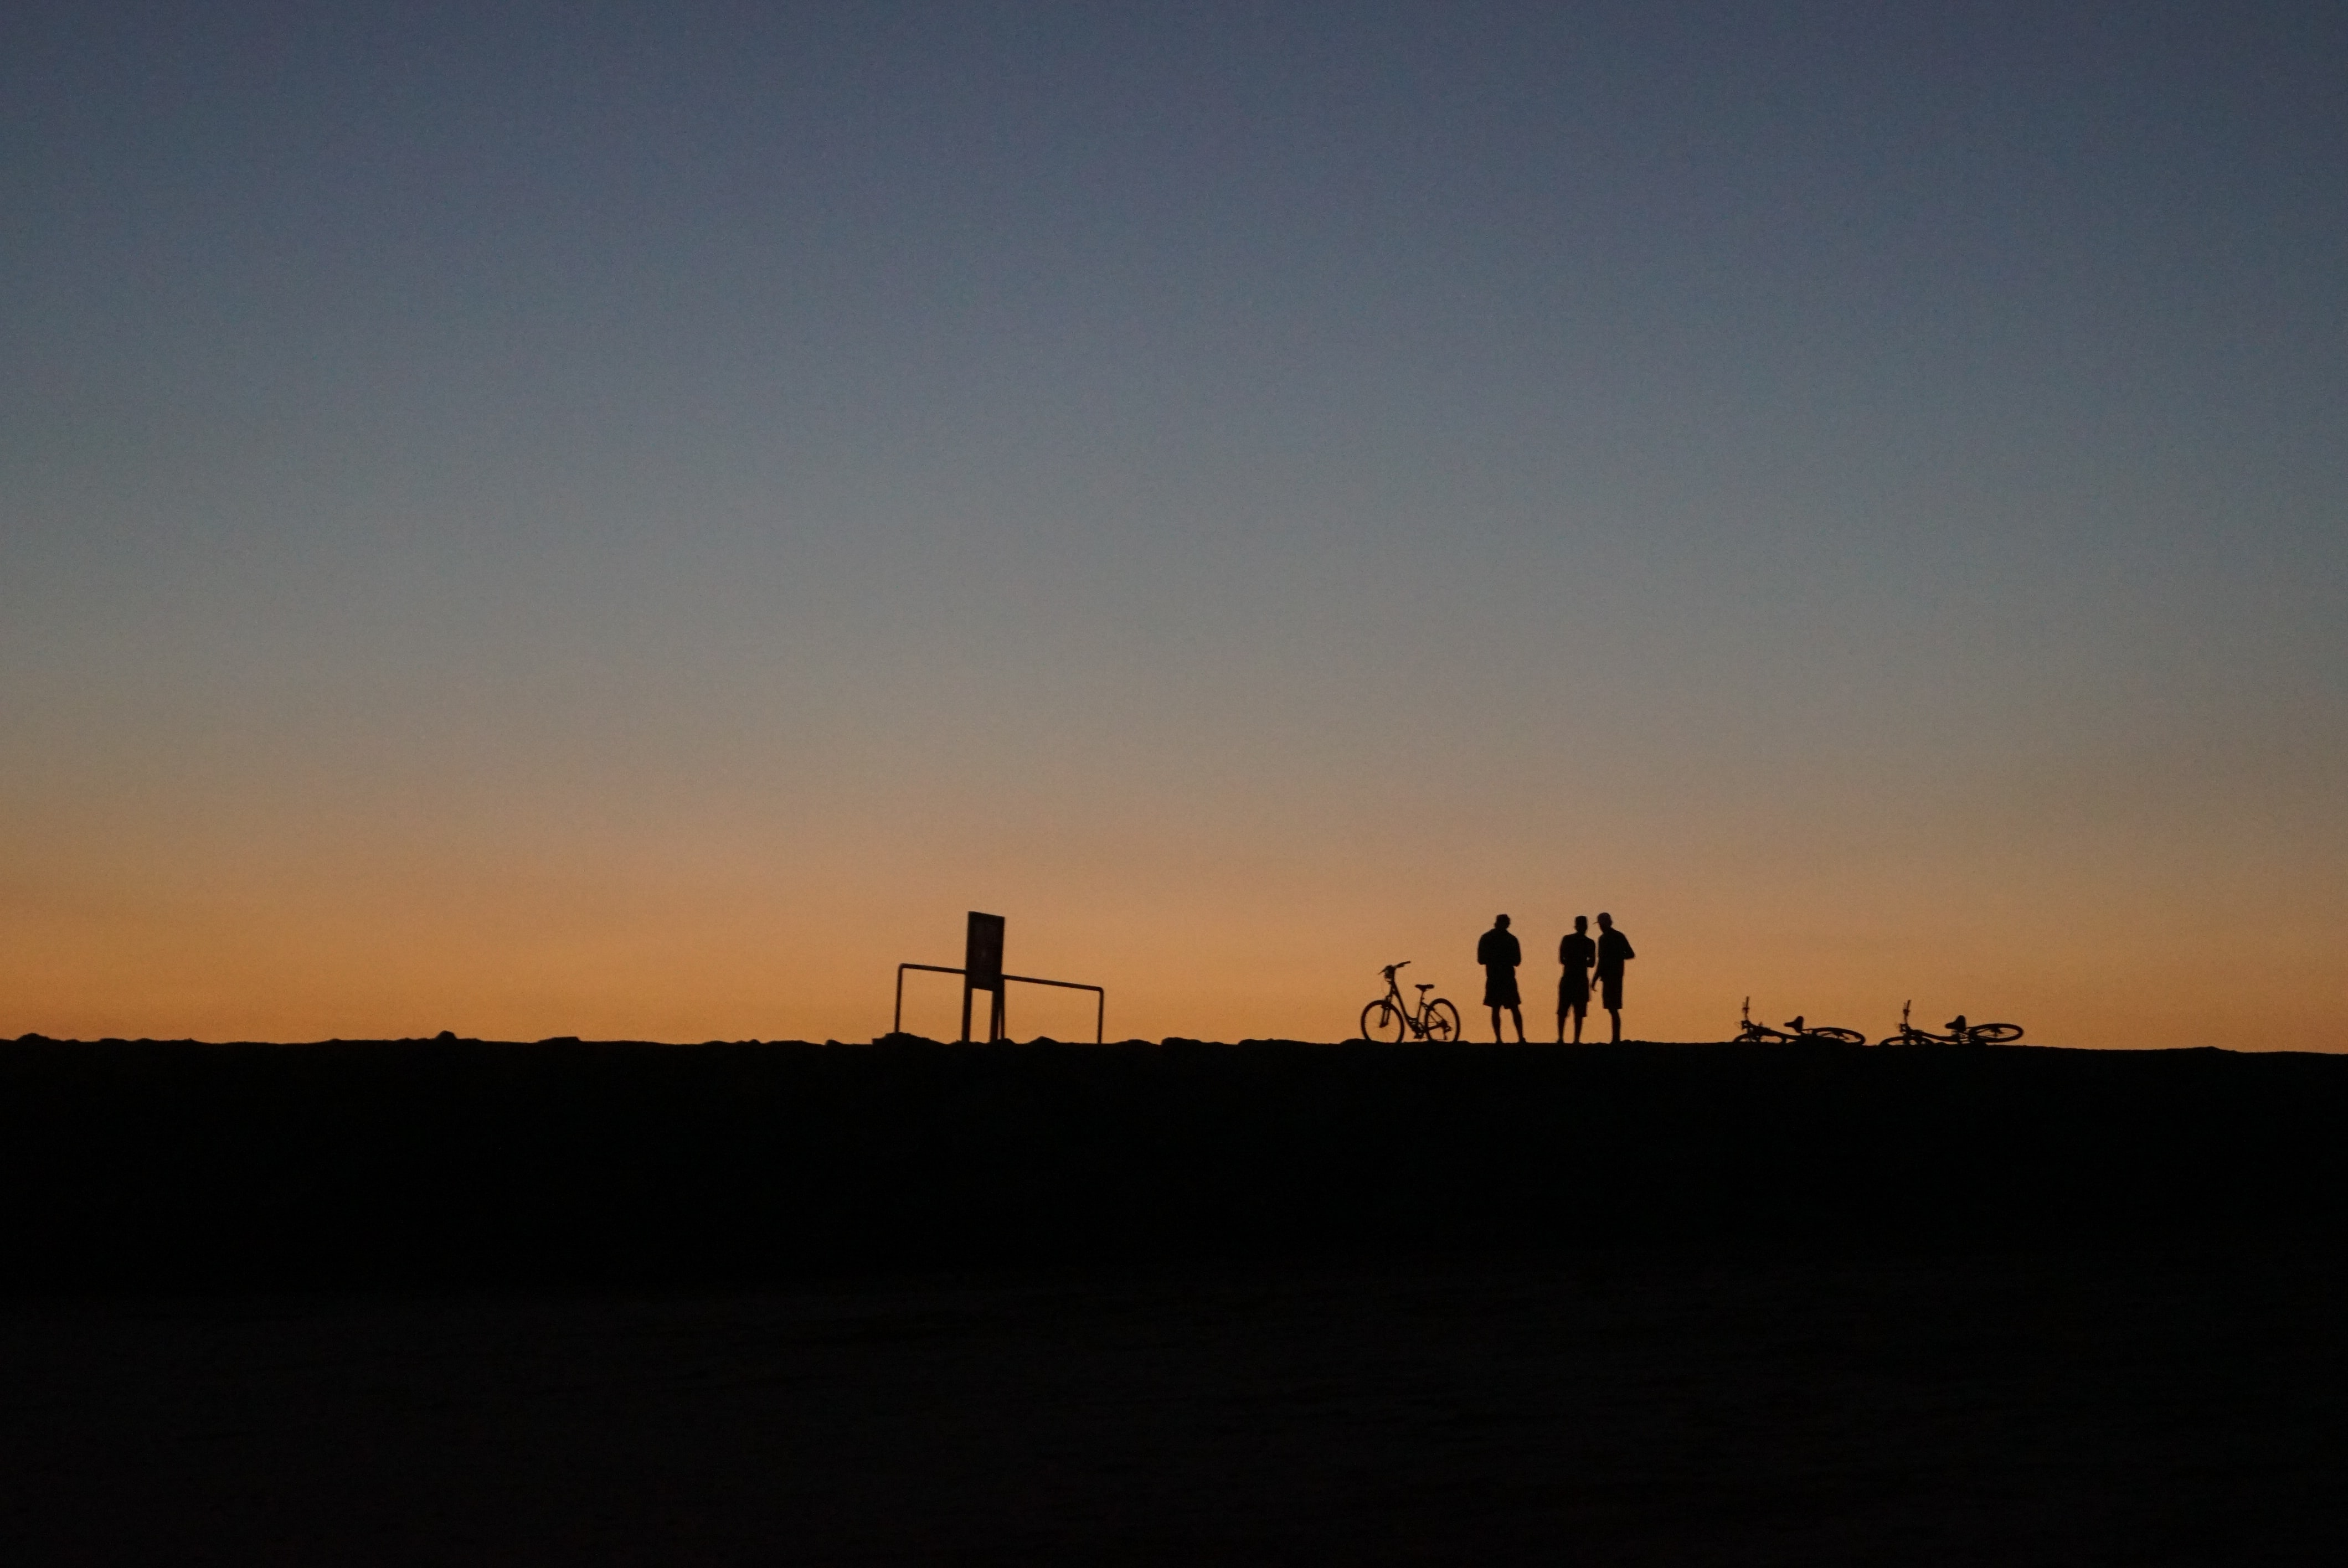 silhouette photography of three people